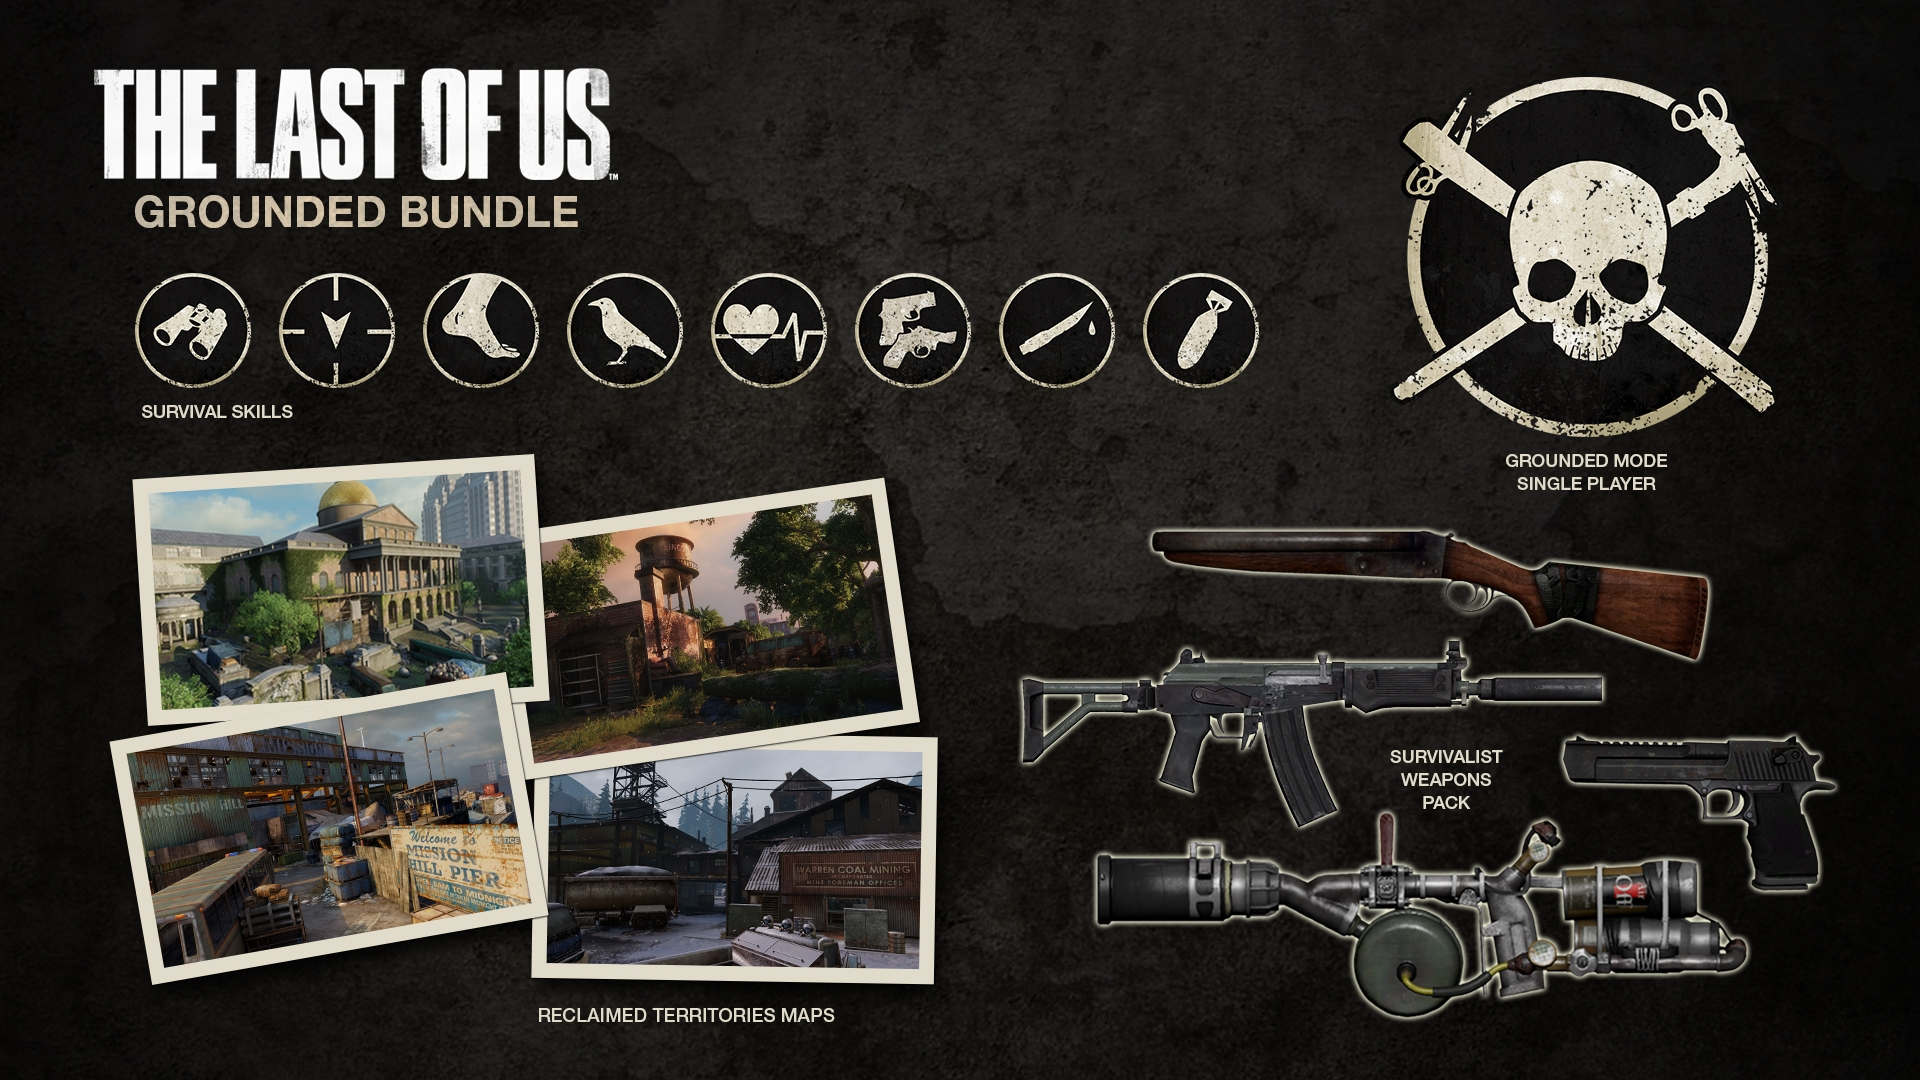 The Last Of Us Grounded Bundle DLC Adds Extreme Grounded Mode - Last of us all maps free